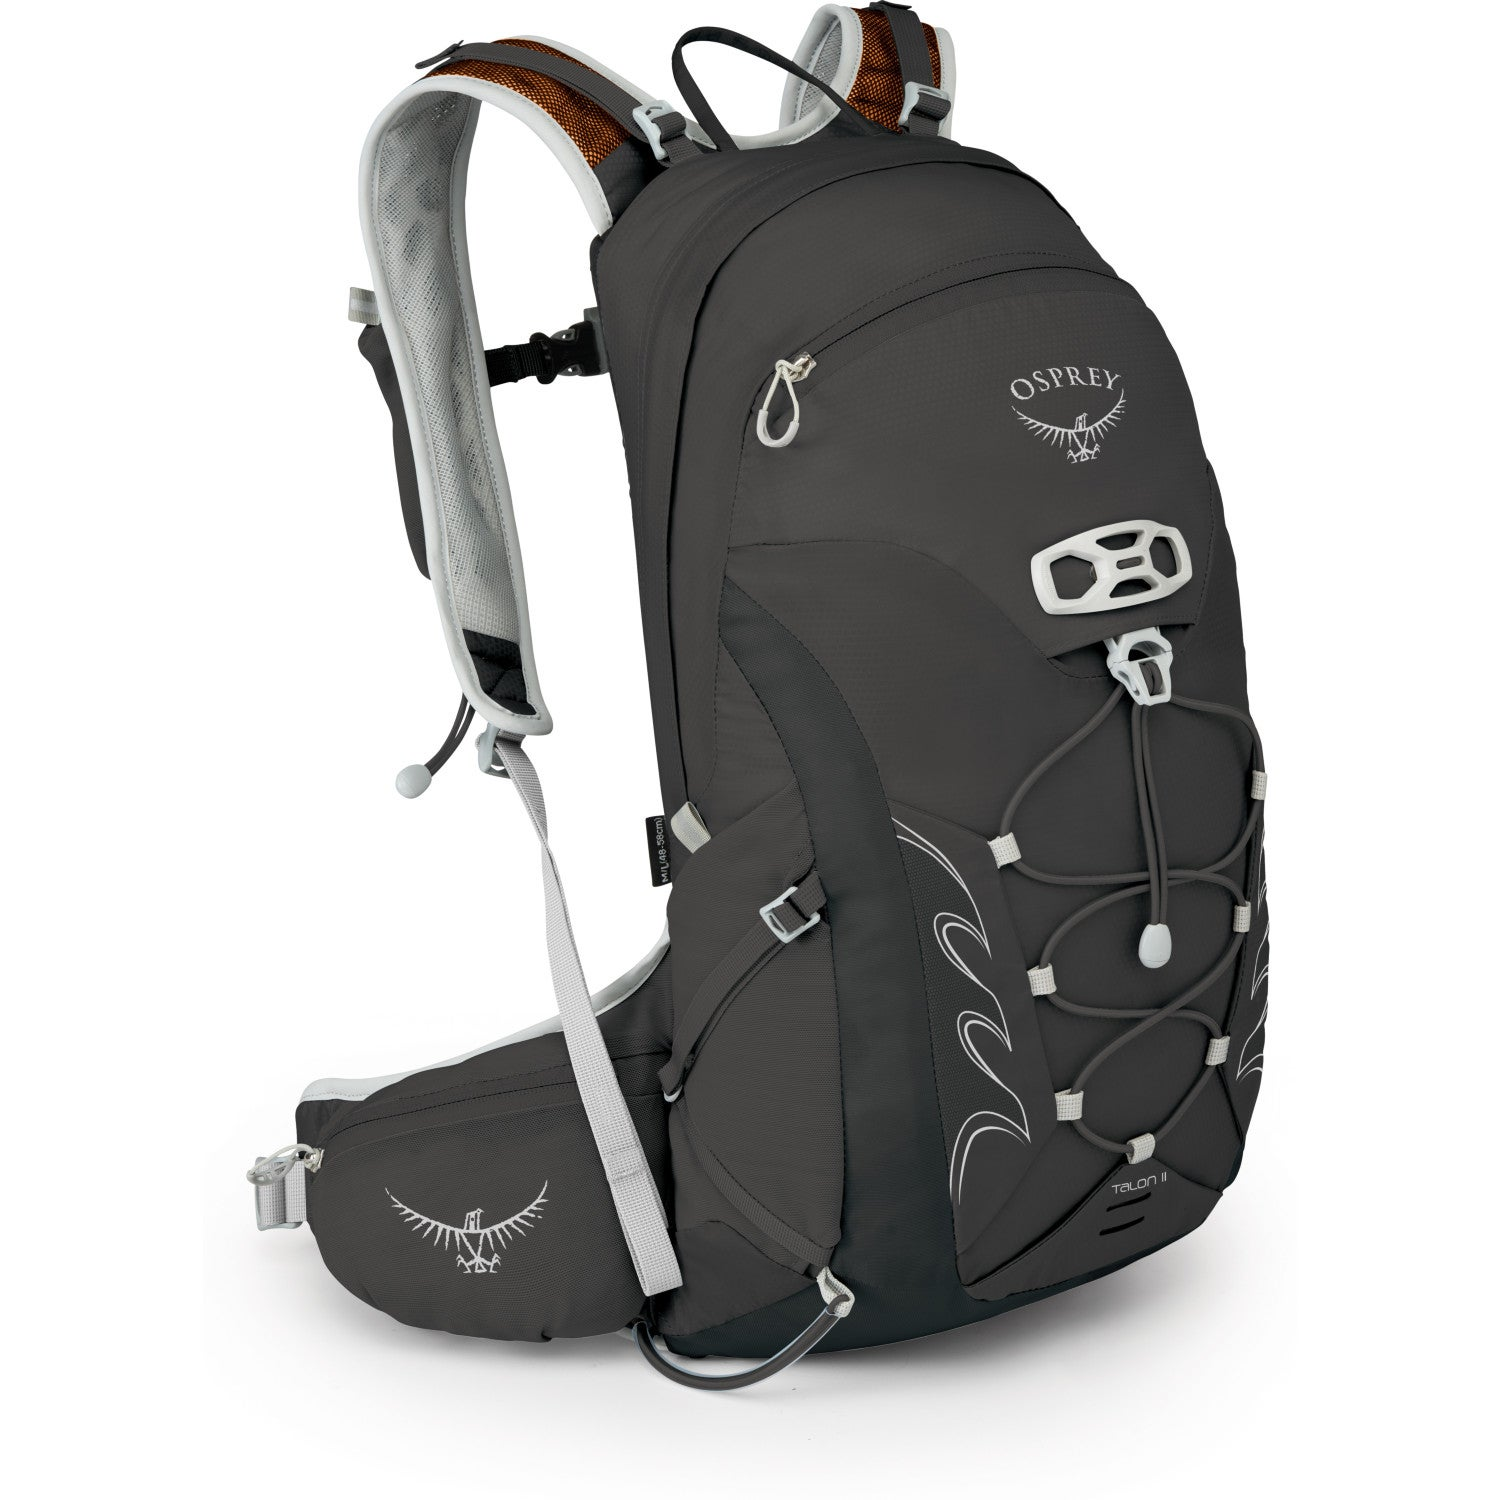 Osprey Talon 11 Mens Hiking Backpack